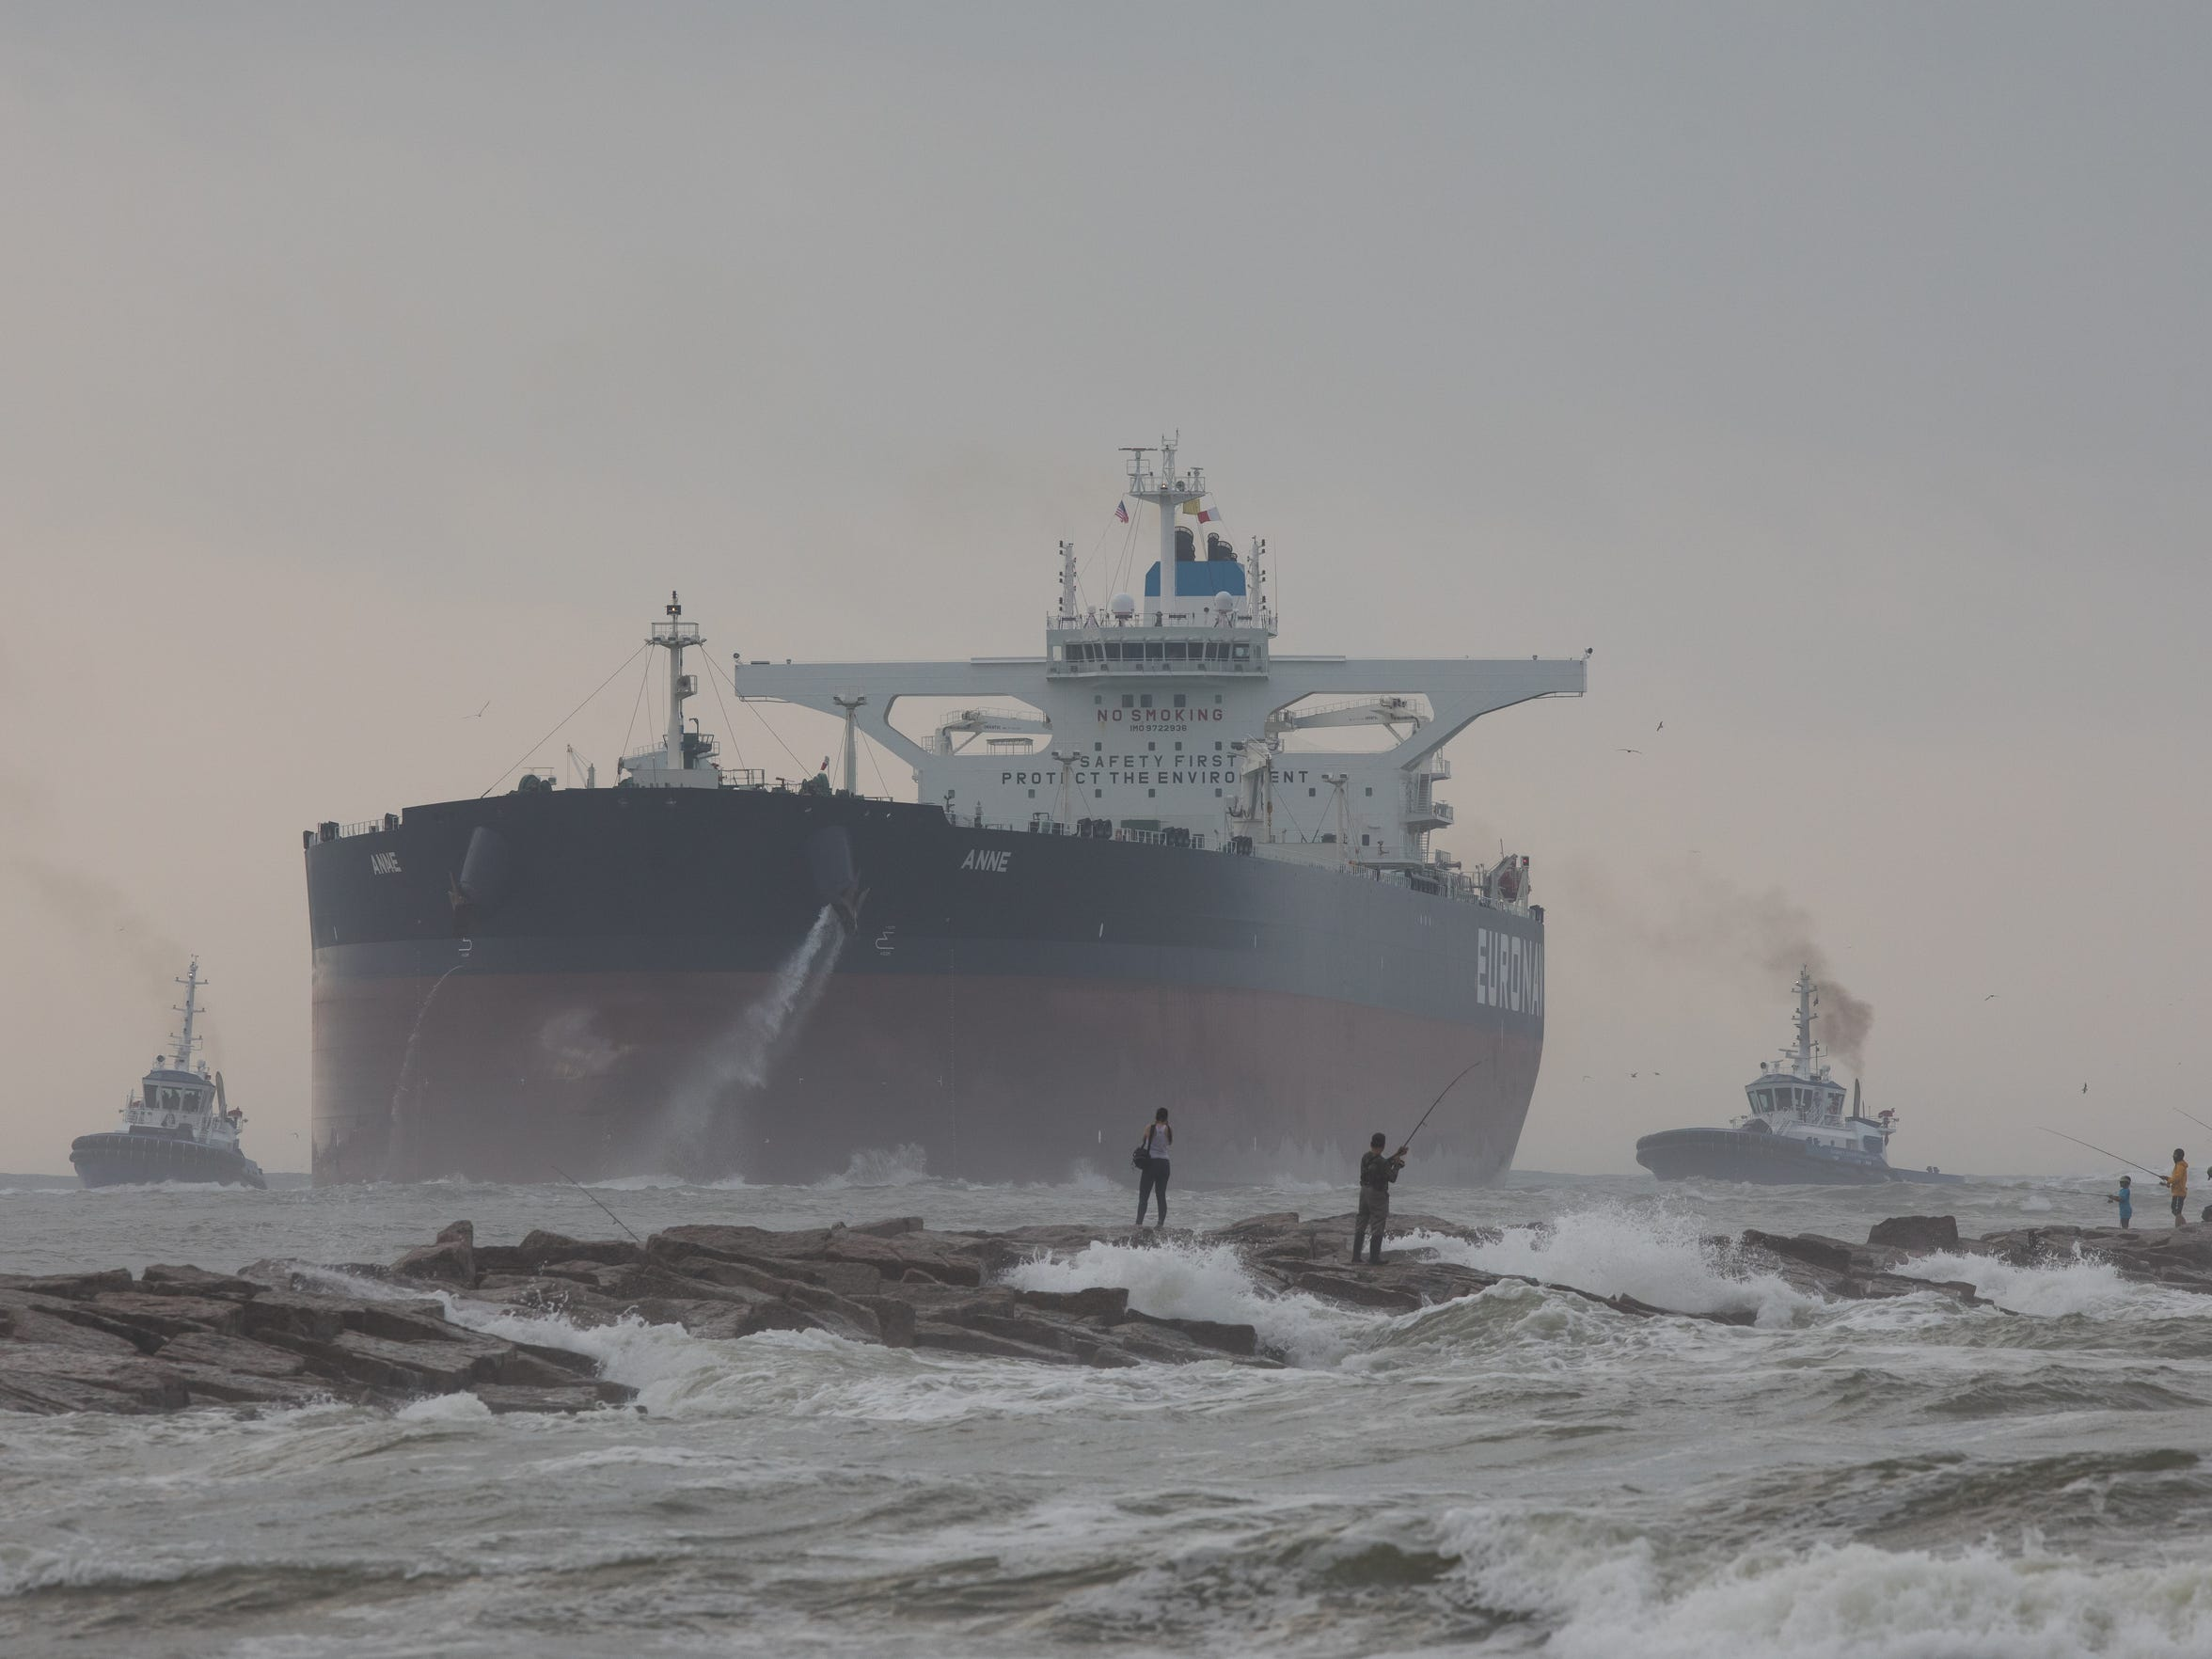 The largest tanker to dock in a Gulf of Mexico port travels threw the Port of Corpus Christi shipping channel in Port Aransas on Friday, May 26, 2017.